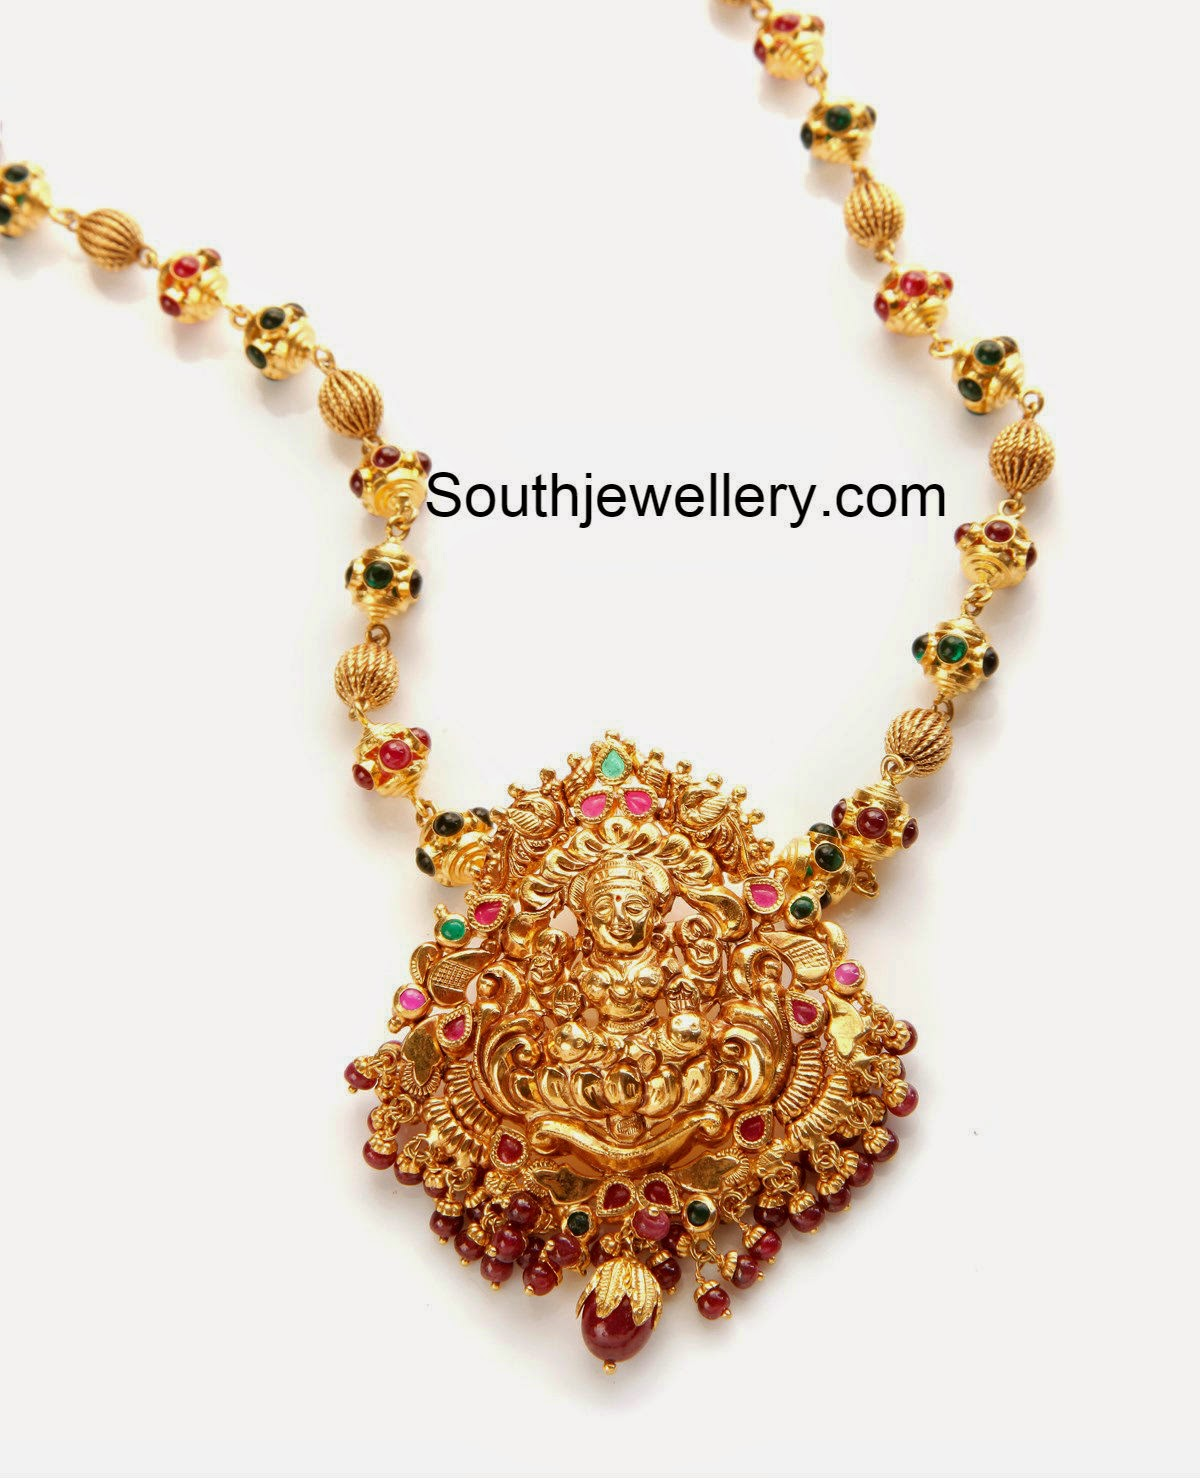 gold balls necklace with lakshmi pendant jewellery designs